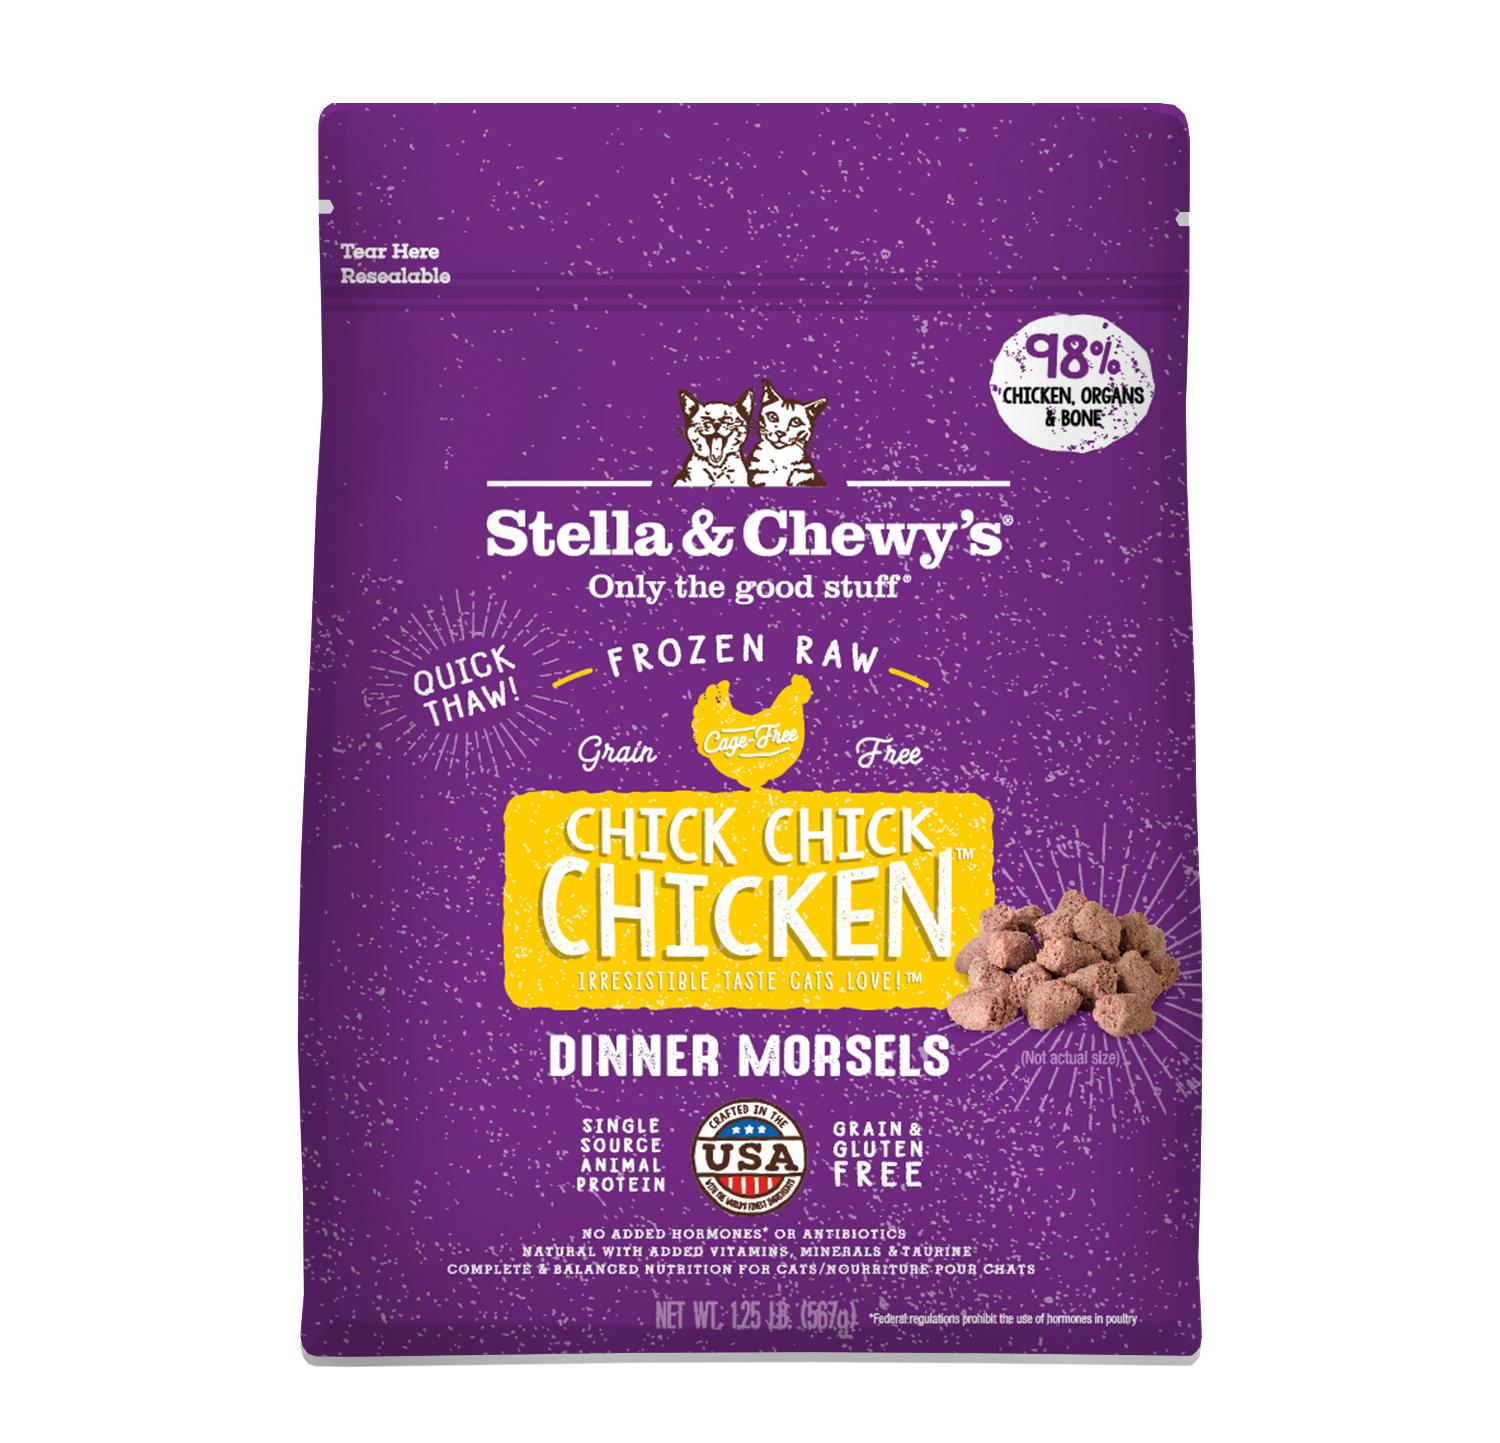 Stella & Chewy's Chick Chick Chicken Dinner Morsels Raw Frozen Cat Food, 1.25-lb (Size: 1.25-lb) Image